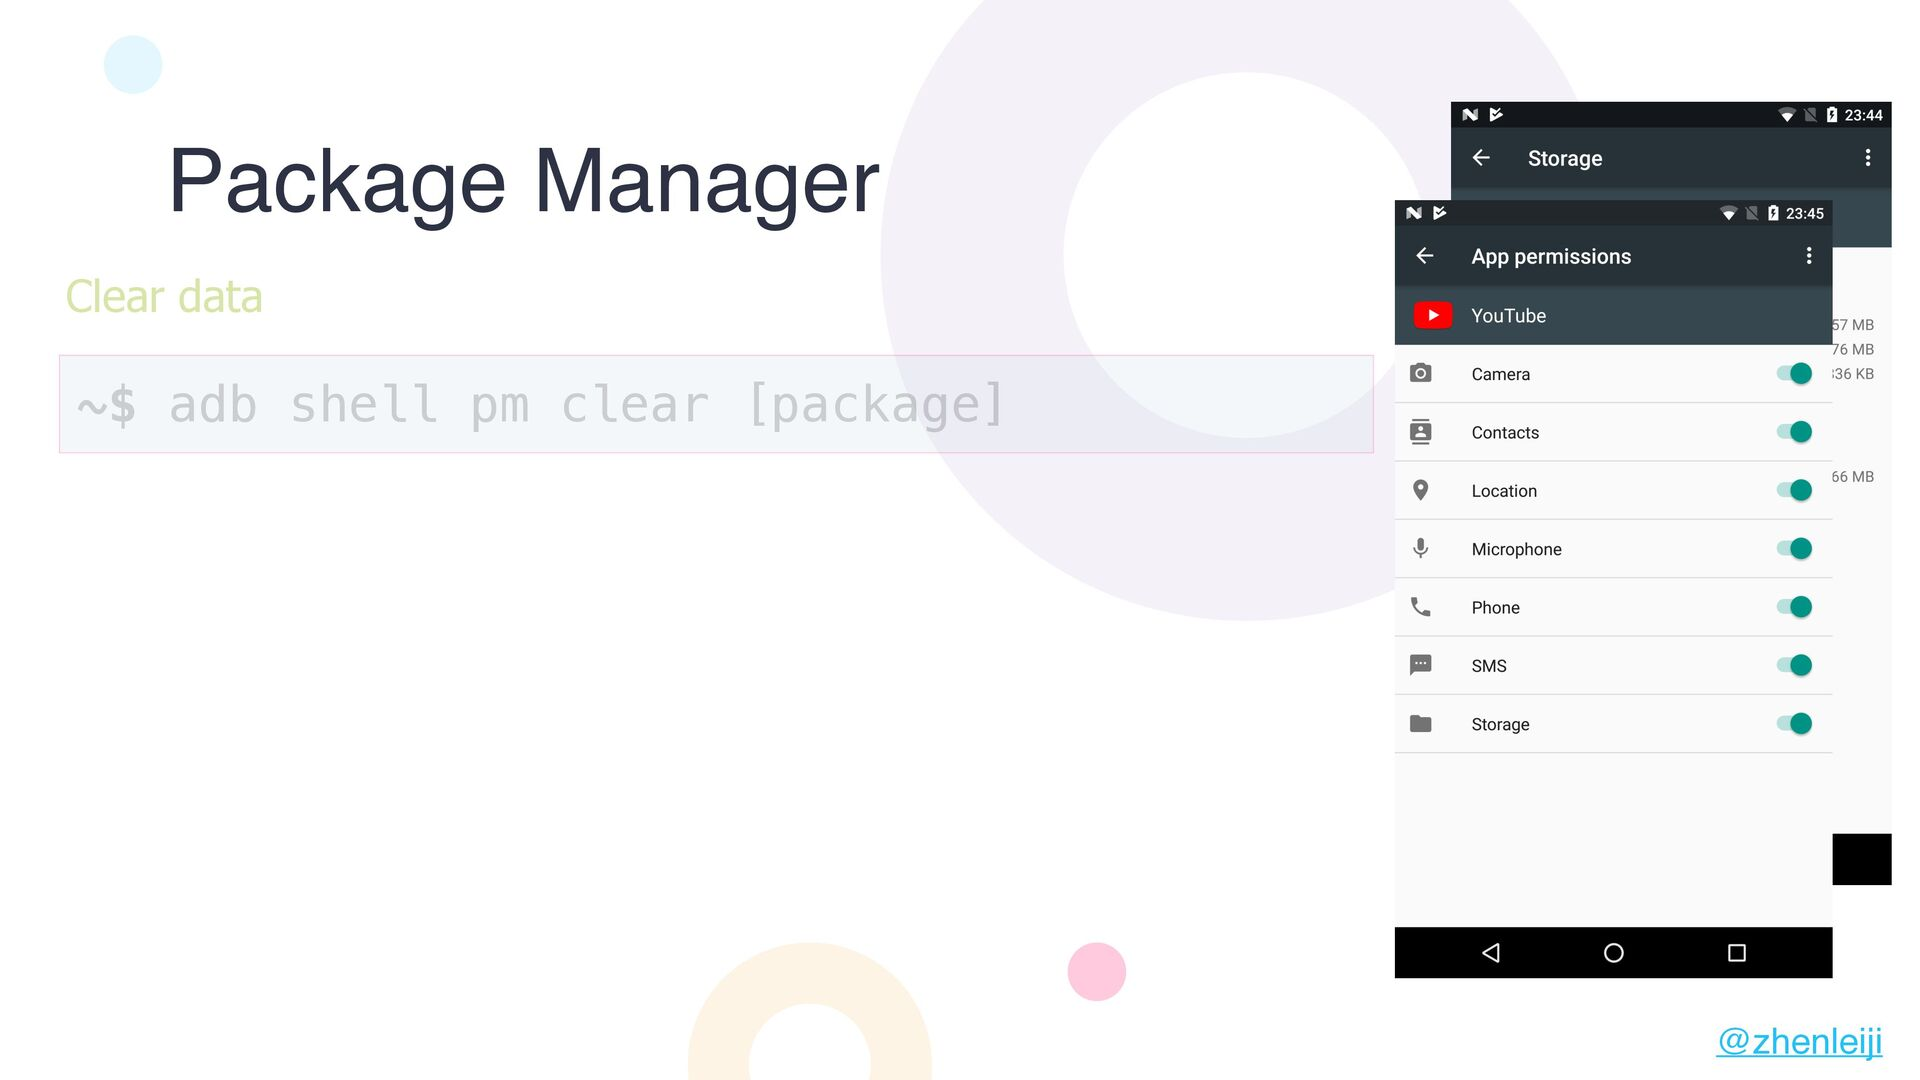 Package Manager ~$ adb shell pm clear [package]...